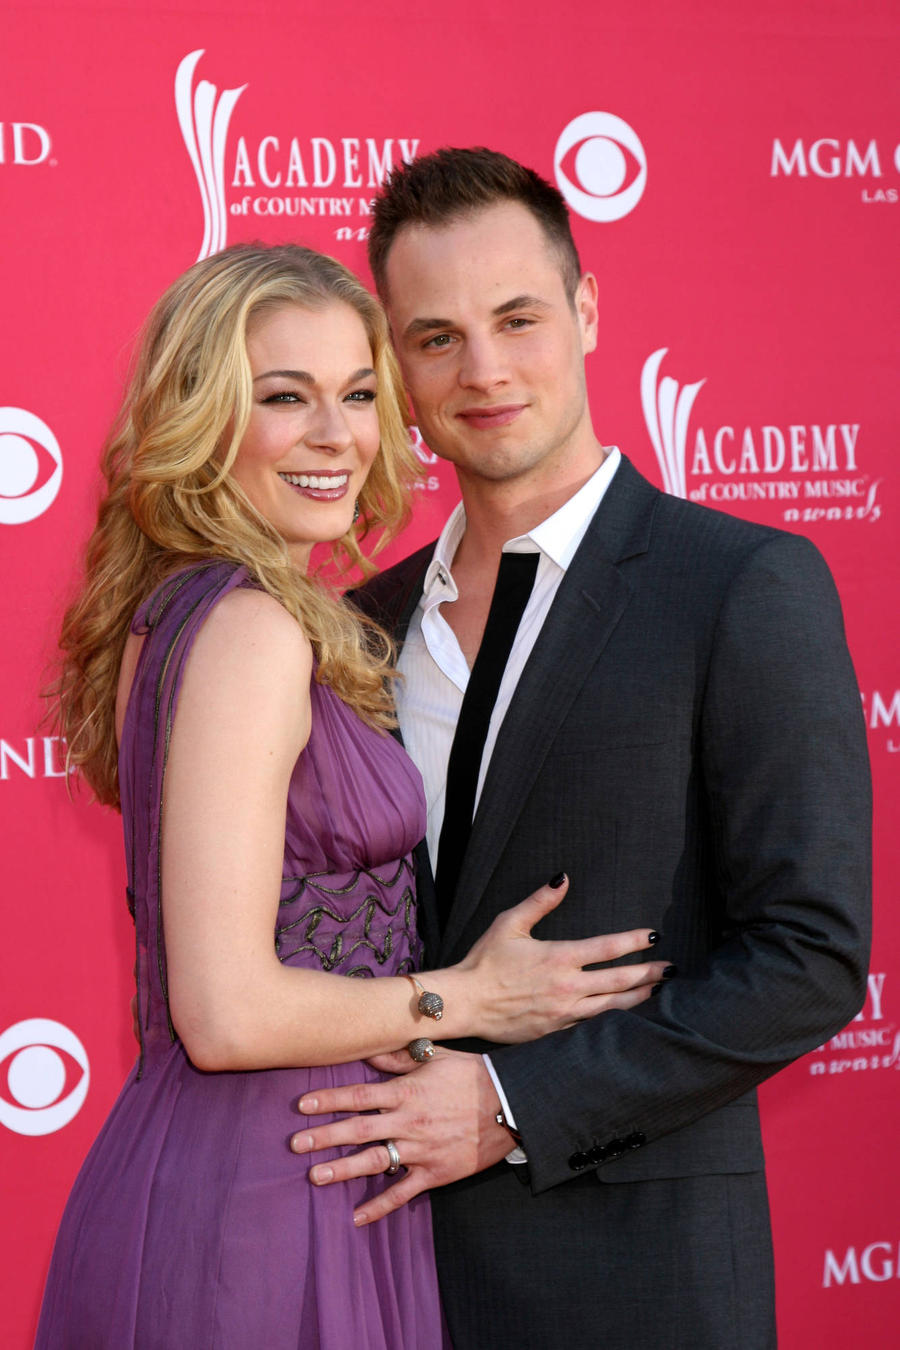 Leann Rimes' Ex Annoyed About Legal Warning